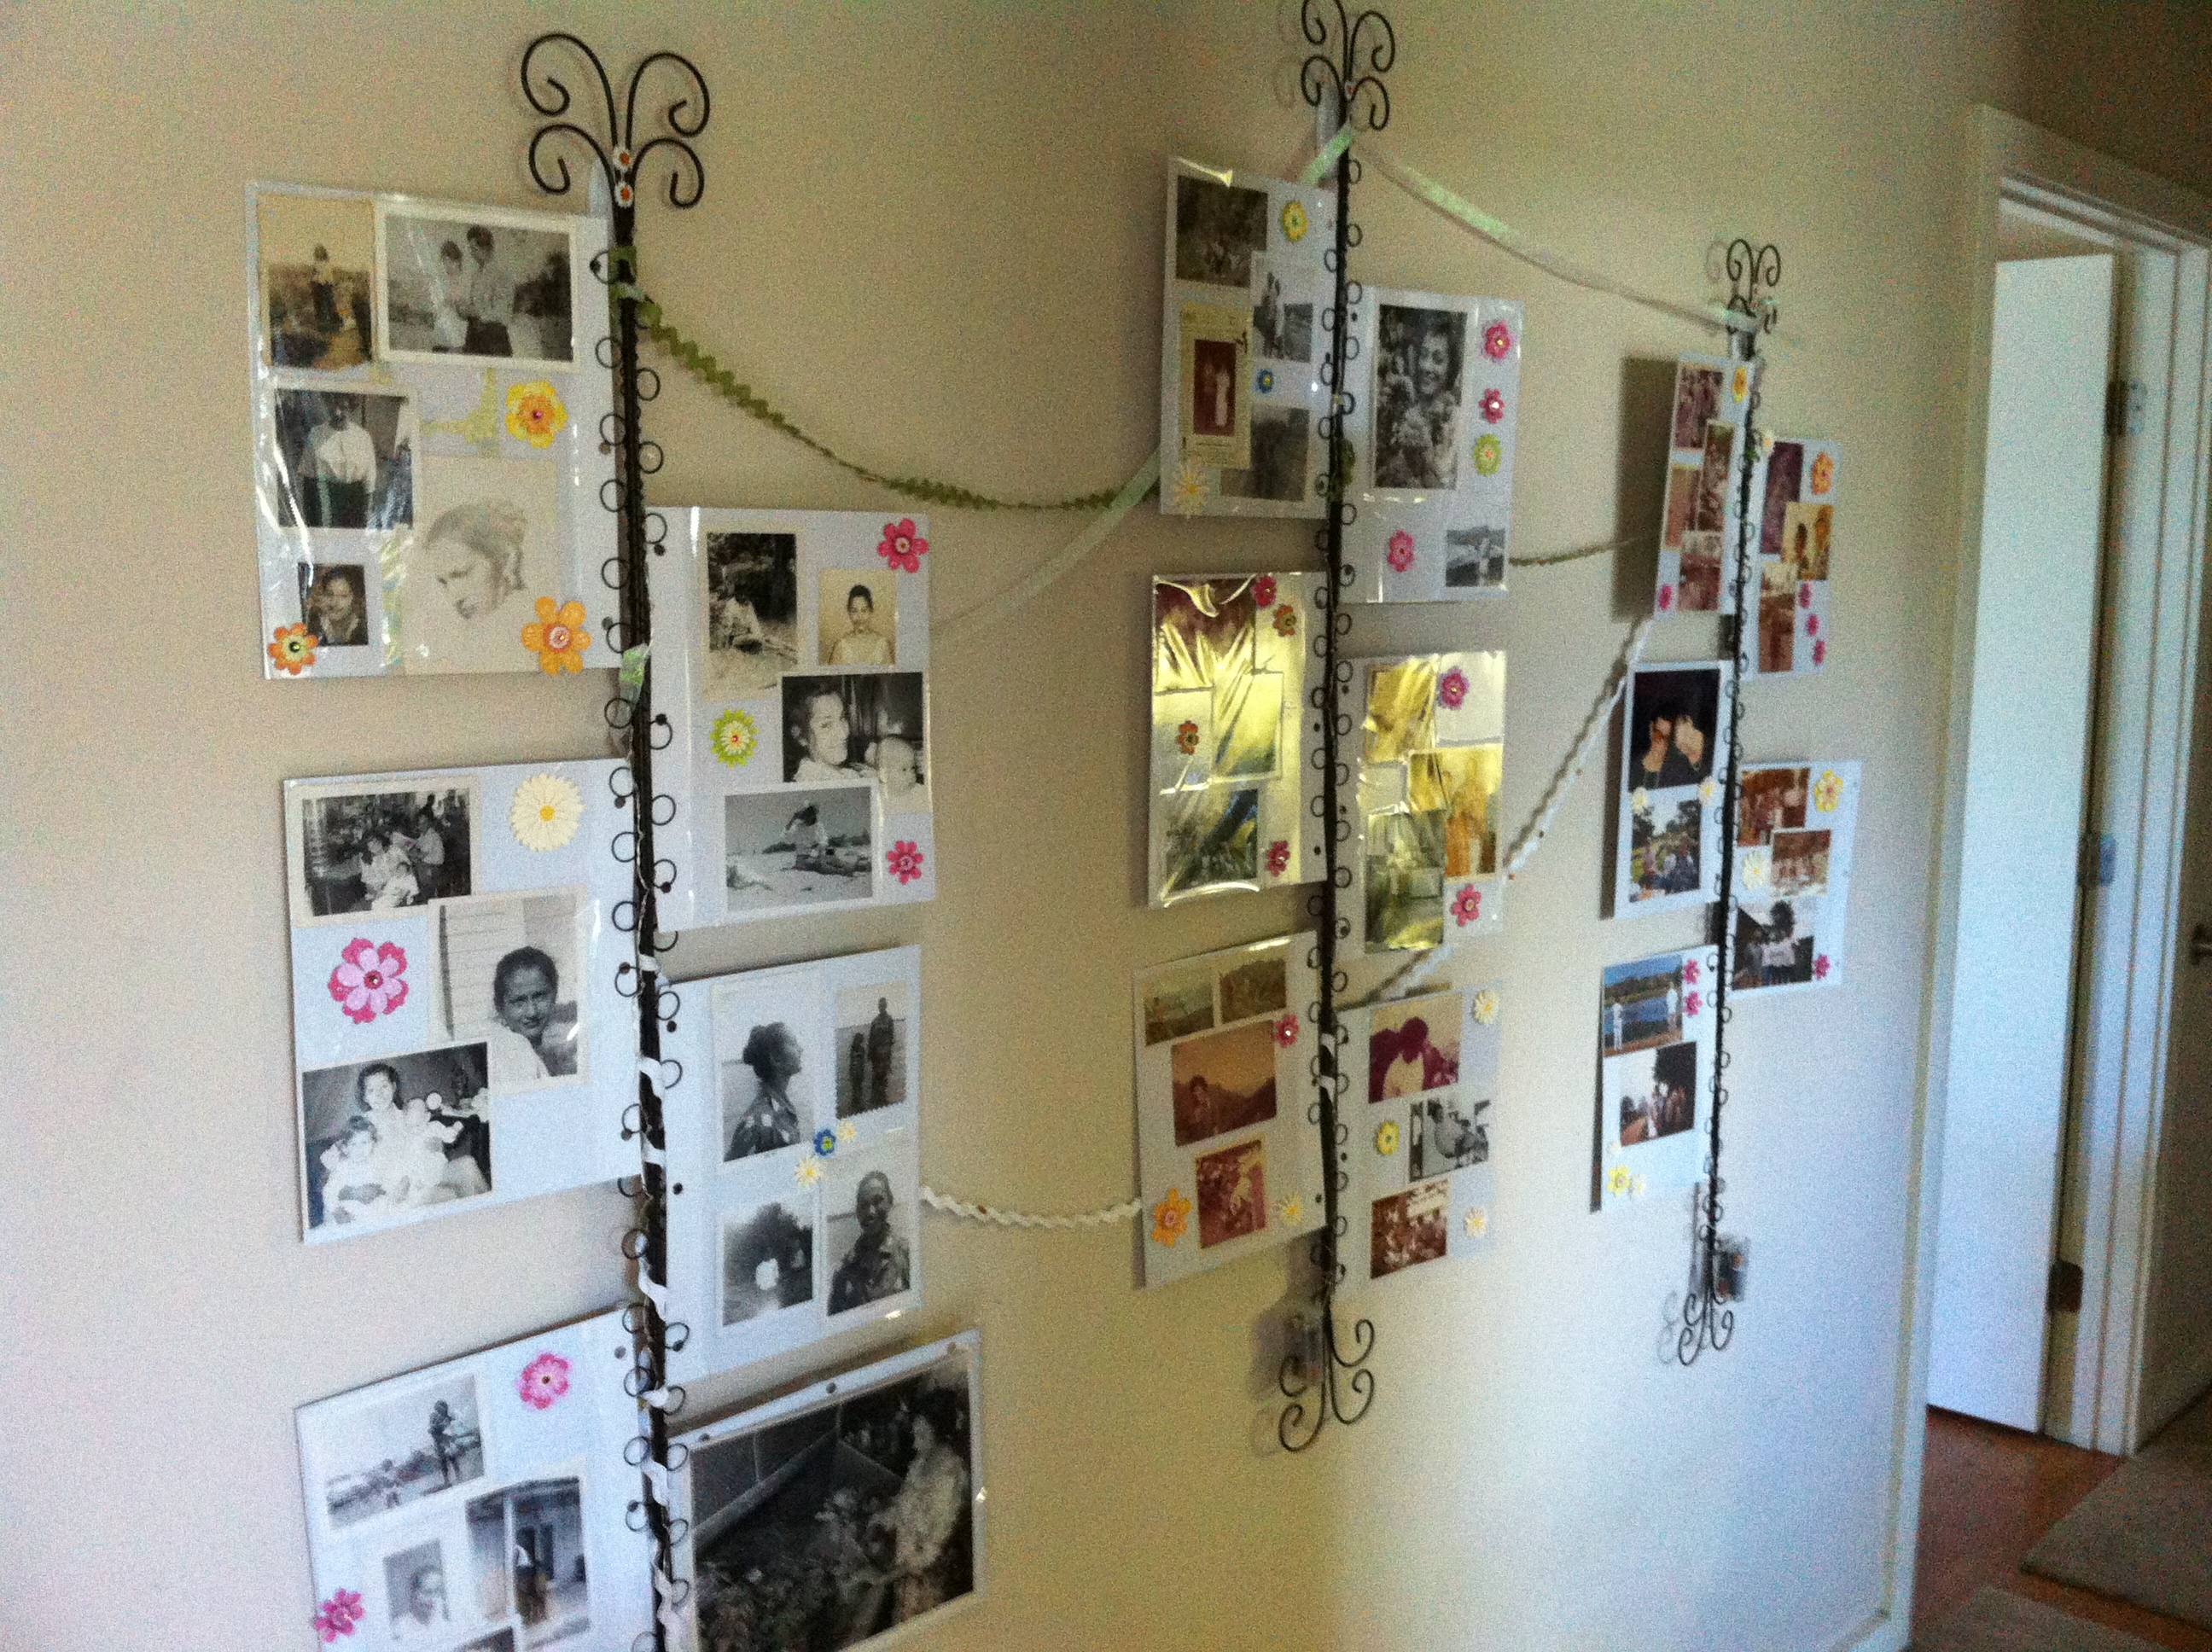 the photos are mounted in album sheets, so they can all go into an album after the party is over.